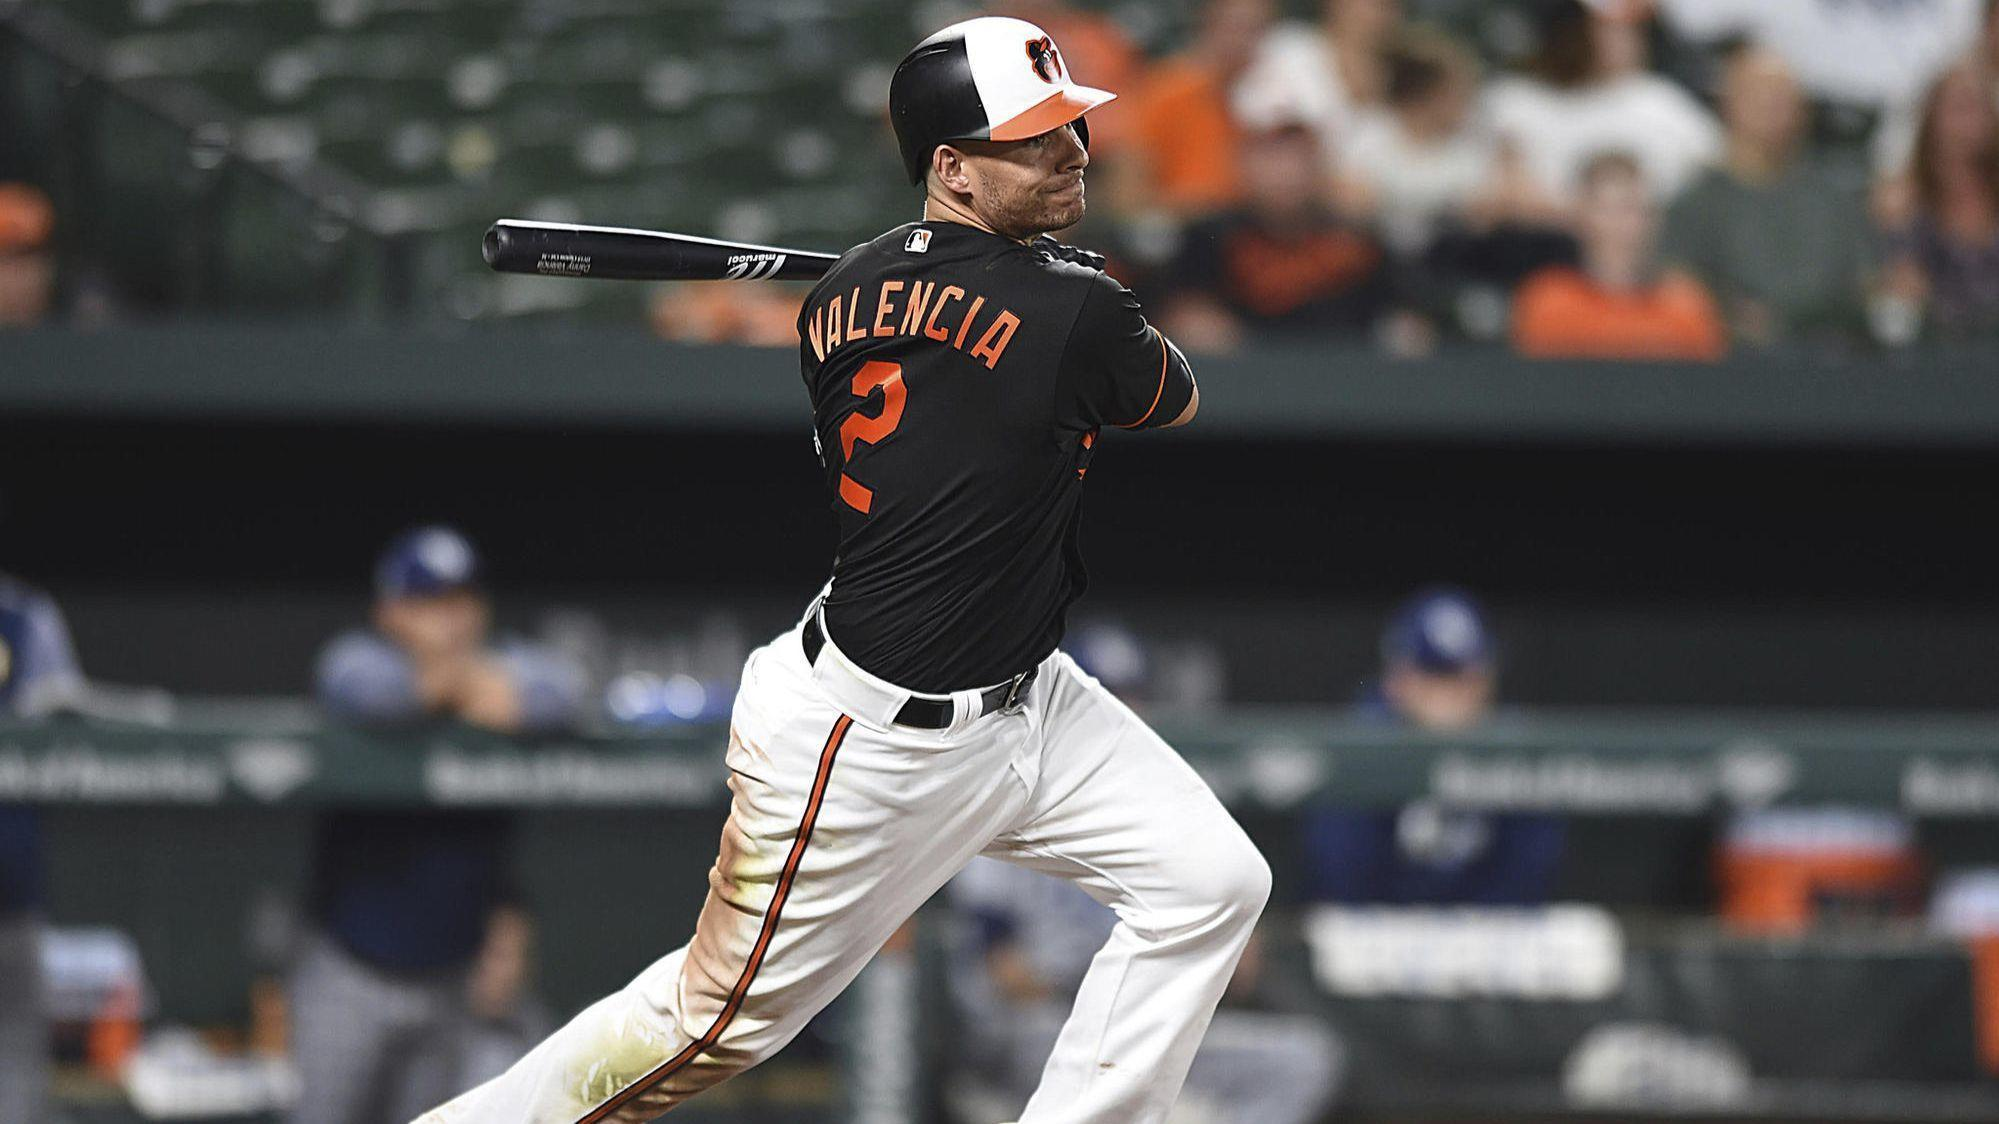 Bs-sp-orioles-valencia-released-20180815